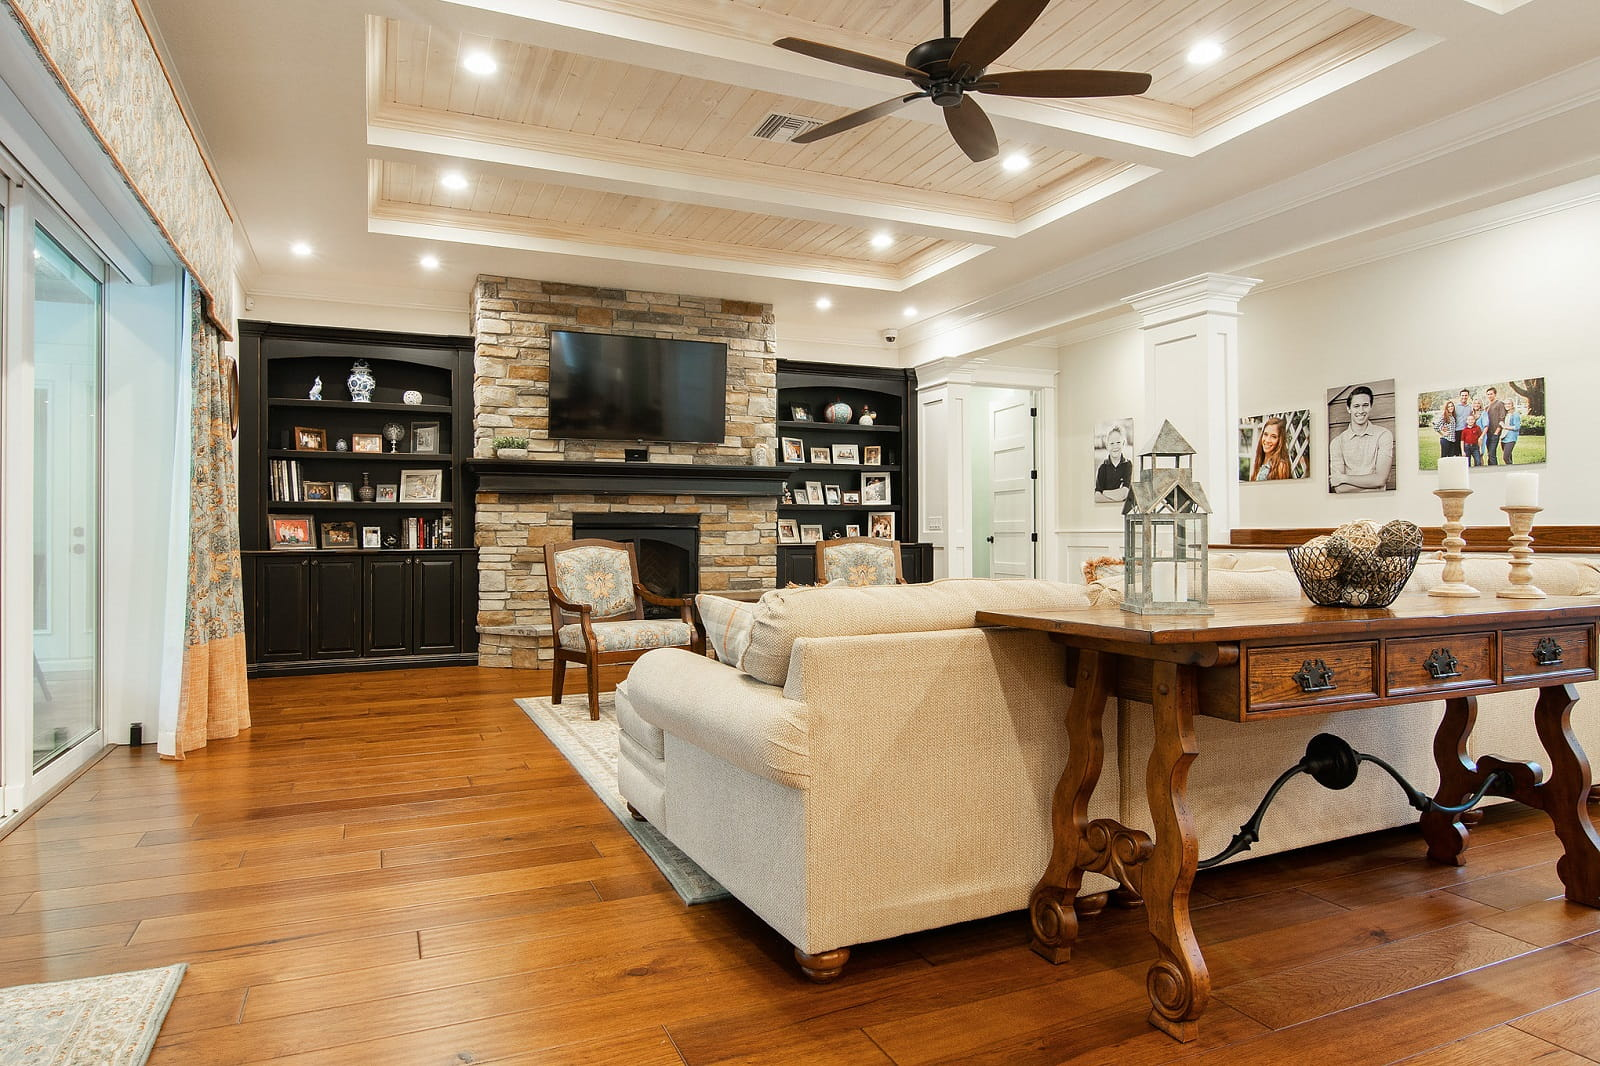 Real Estate Photography in Lakeland - FL - USA - Living Area View